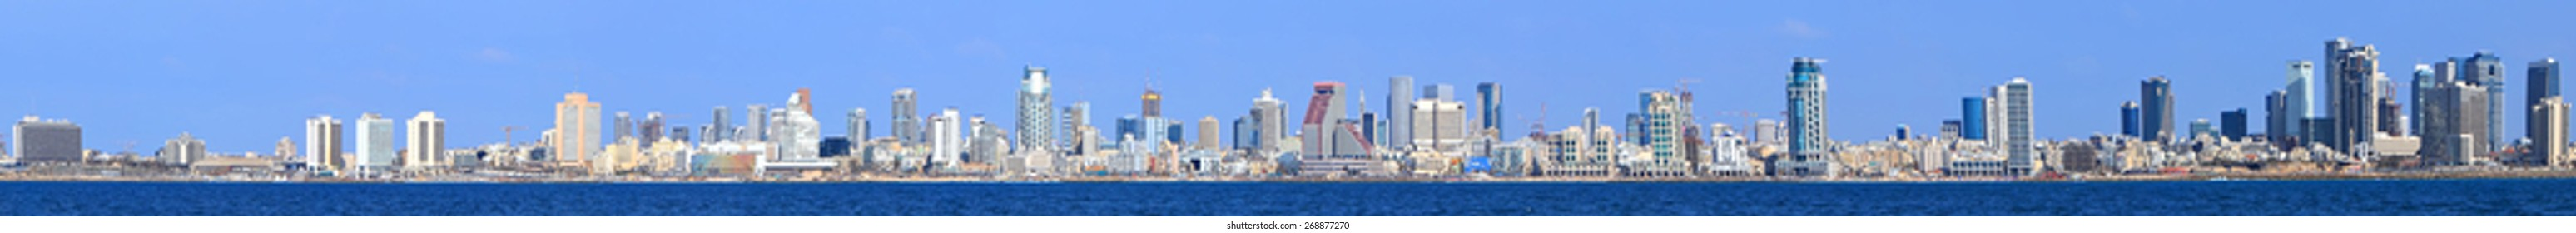 Tel Aviv coast panoramic view. Mediterranean, Middle East, Israel